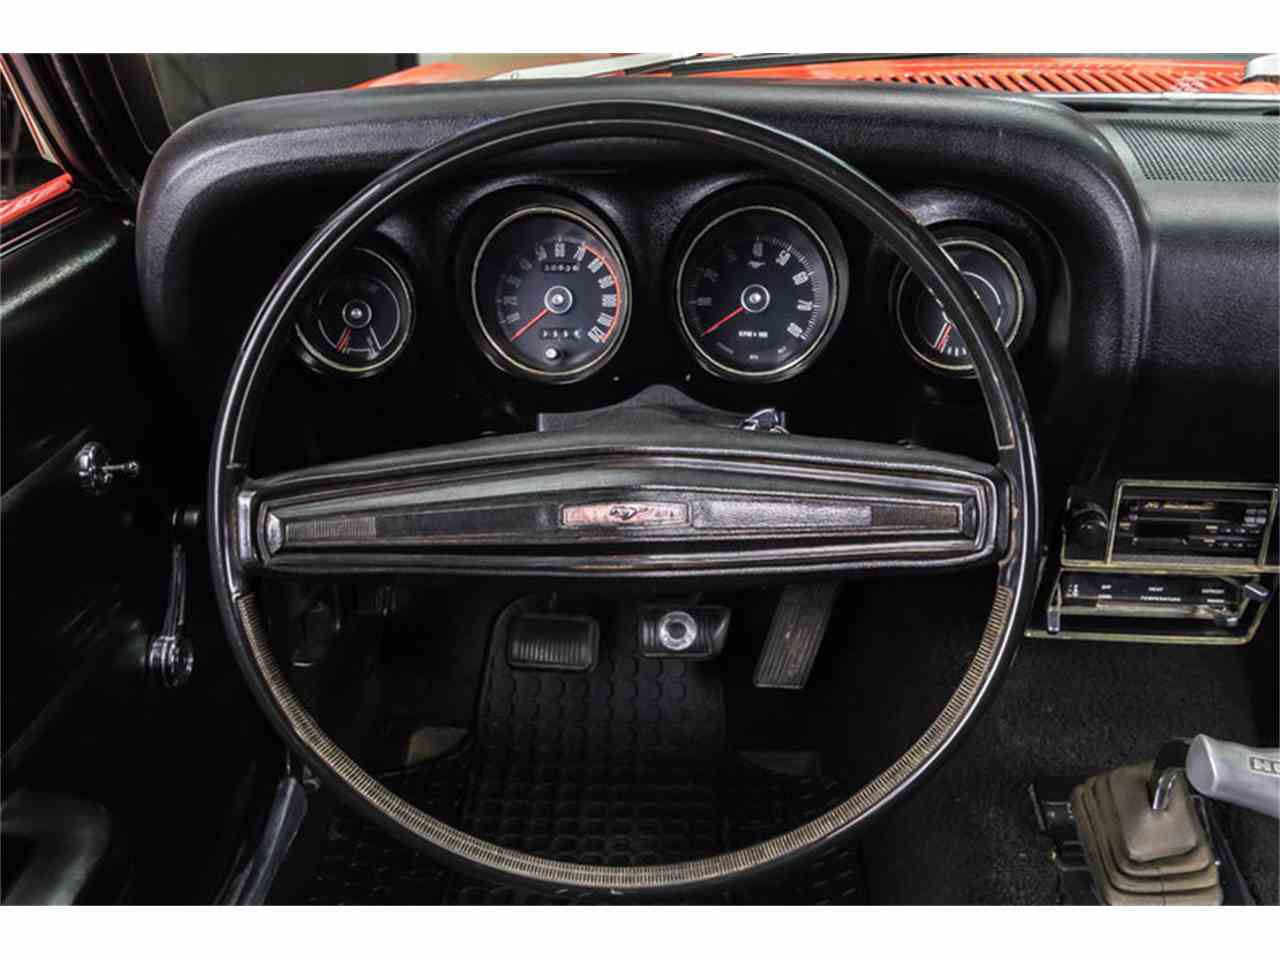 Large Picture of Classic 1970 Ford Mustang located in Michigan Offered by Vanguard Motor Sales - GR9E